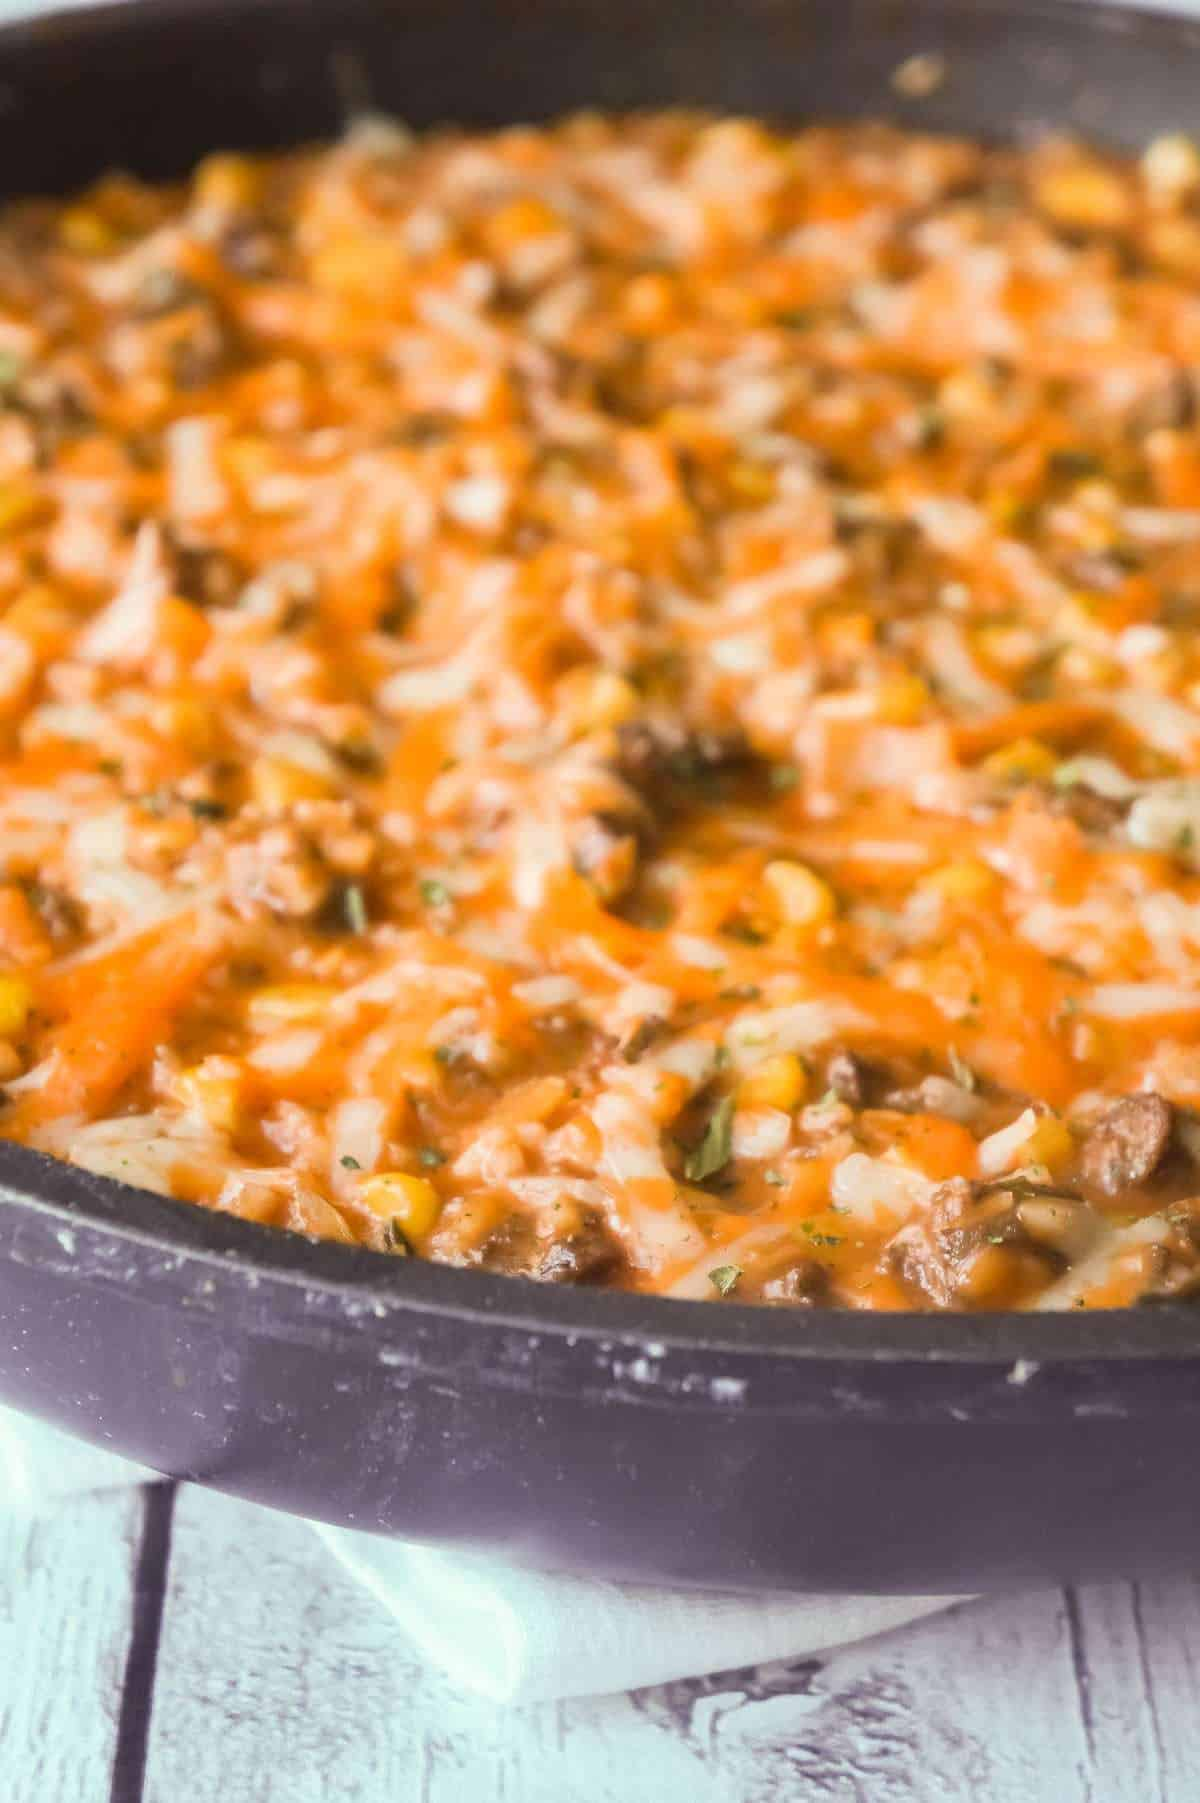 Cheesy Tomato Ground Beef and Rice is an easy ground beef dish loaded with corn, cheese and rice all tossed in a creamy tomato sauce.